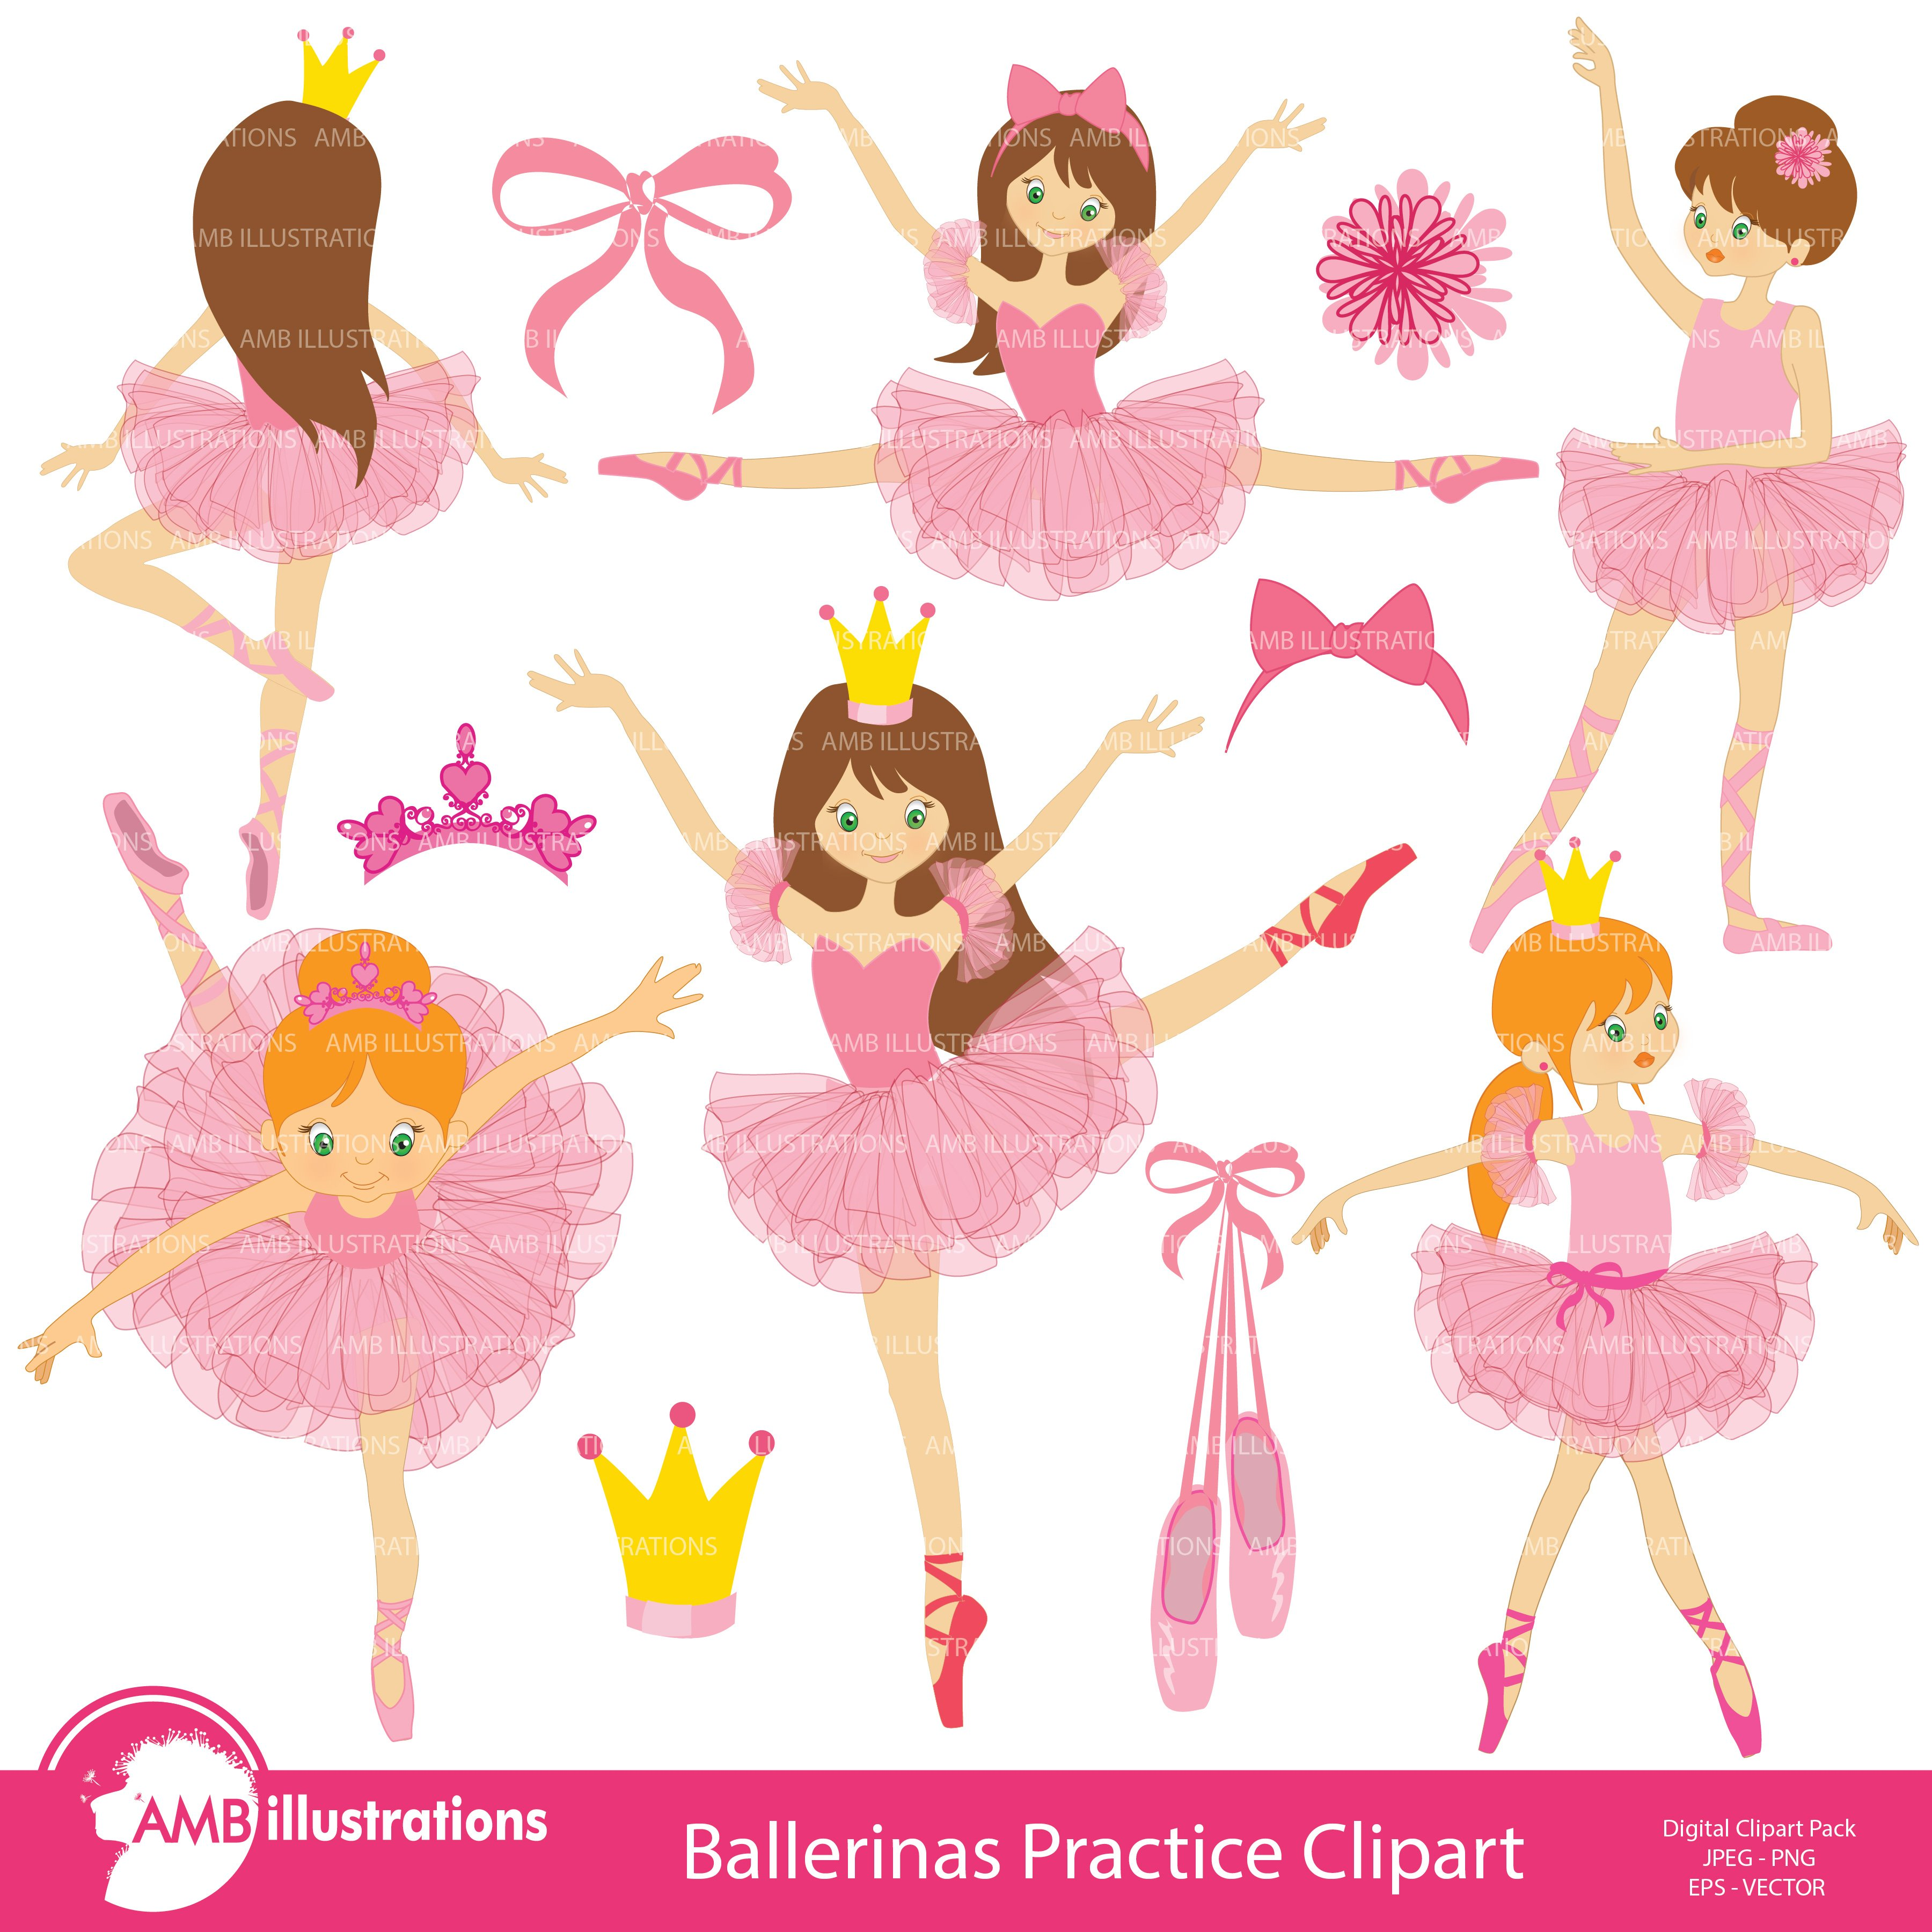 Clip Art Ballerina Clipart ballerina clipart photos graphics fonts themes templates ballet clipart